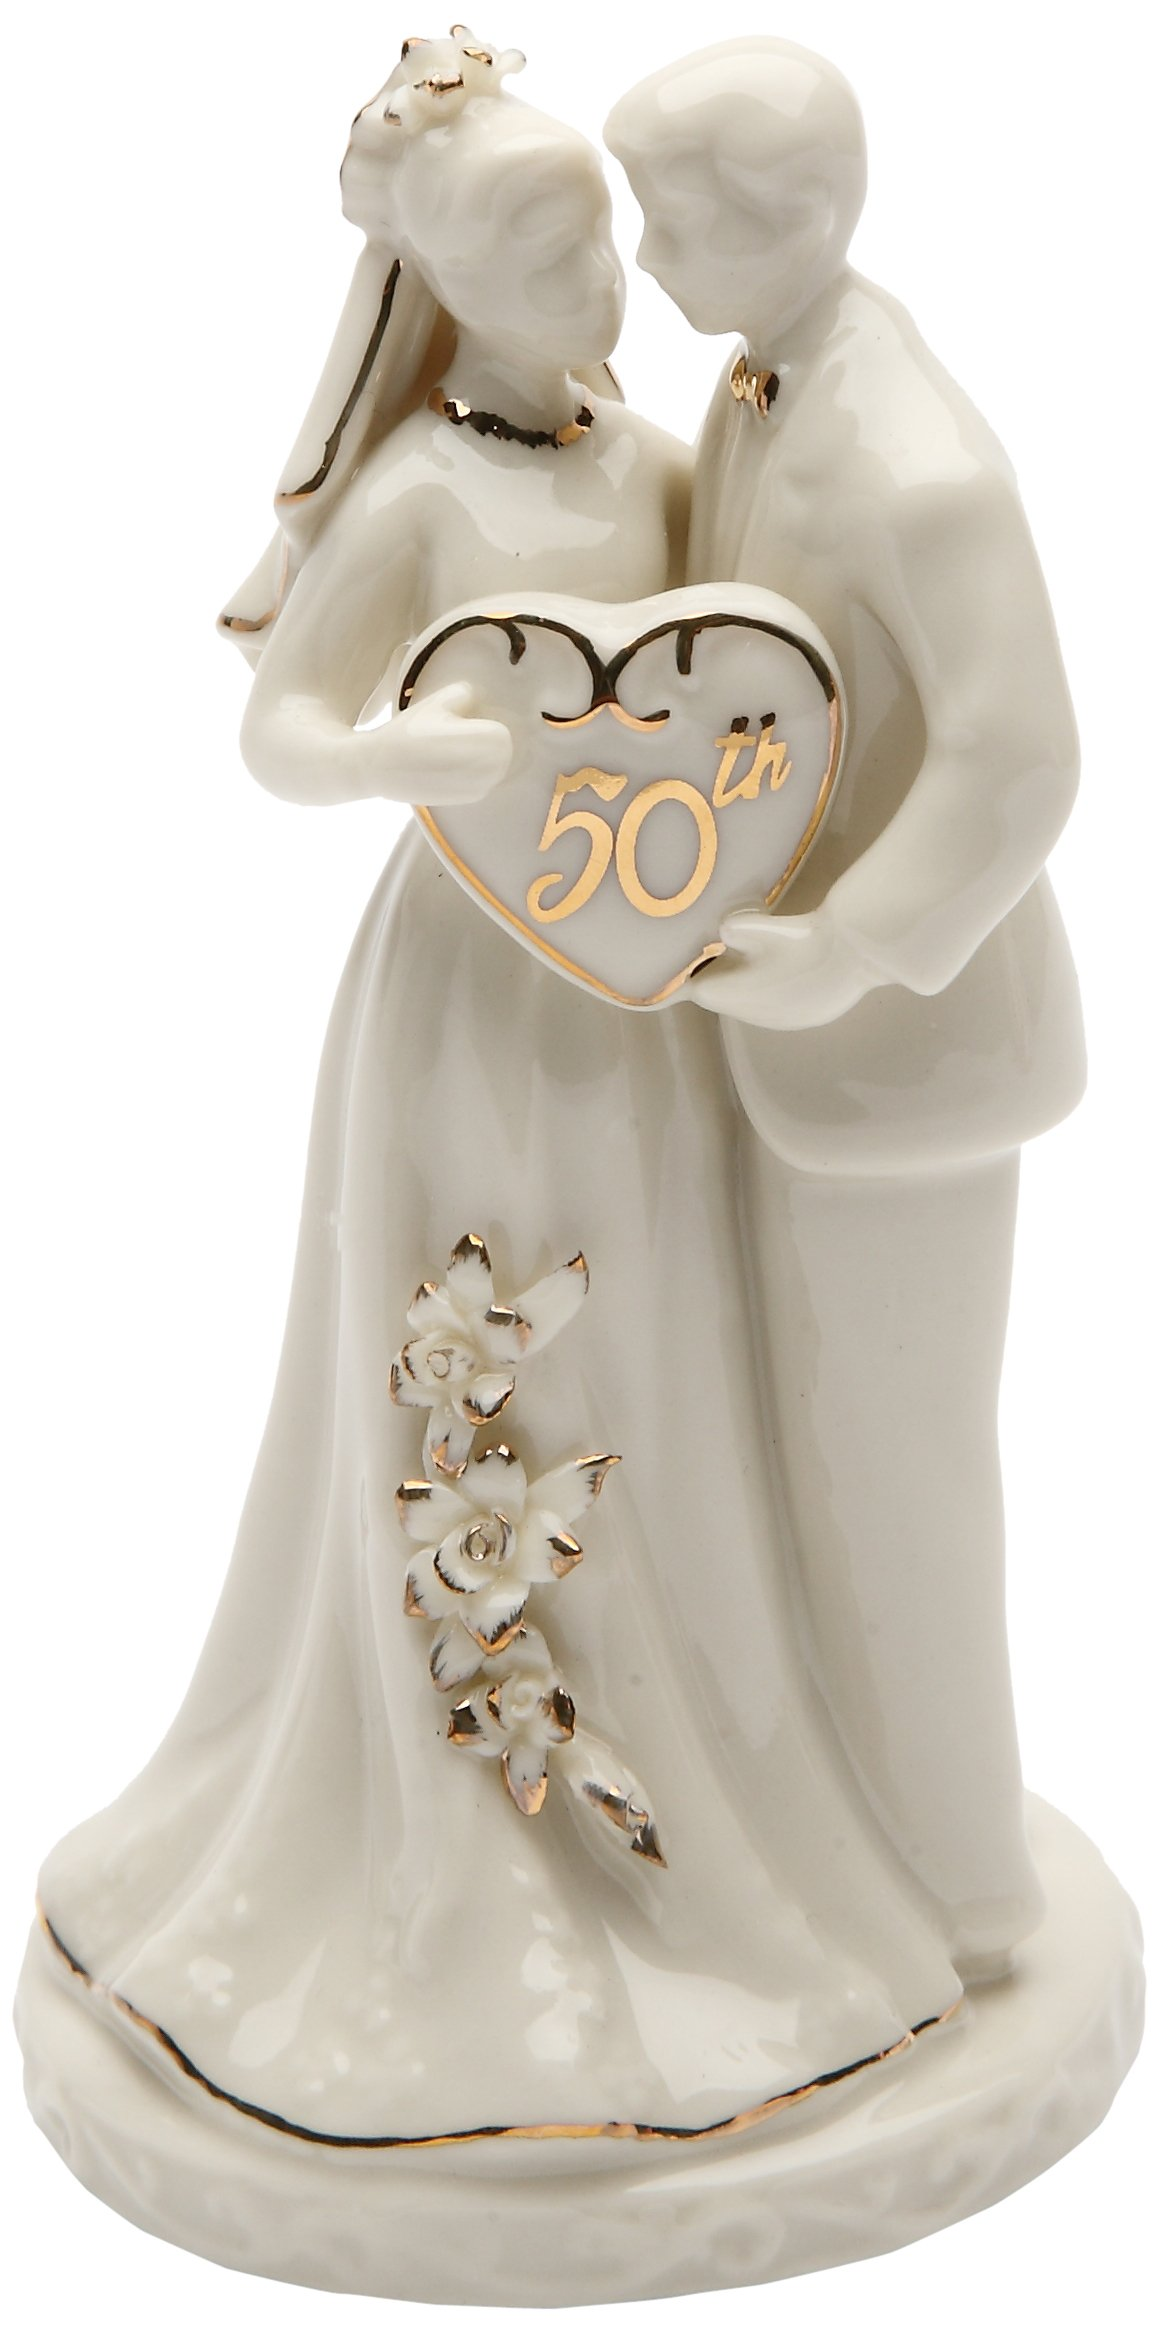 Cosmos Gifts 30715 Ceramic 50th Anniversary Couple Figurine, 4-3/4-Inch by Cosmos Gifts